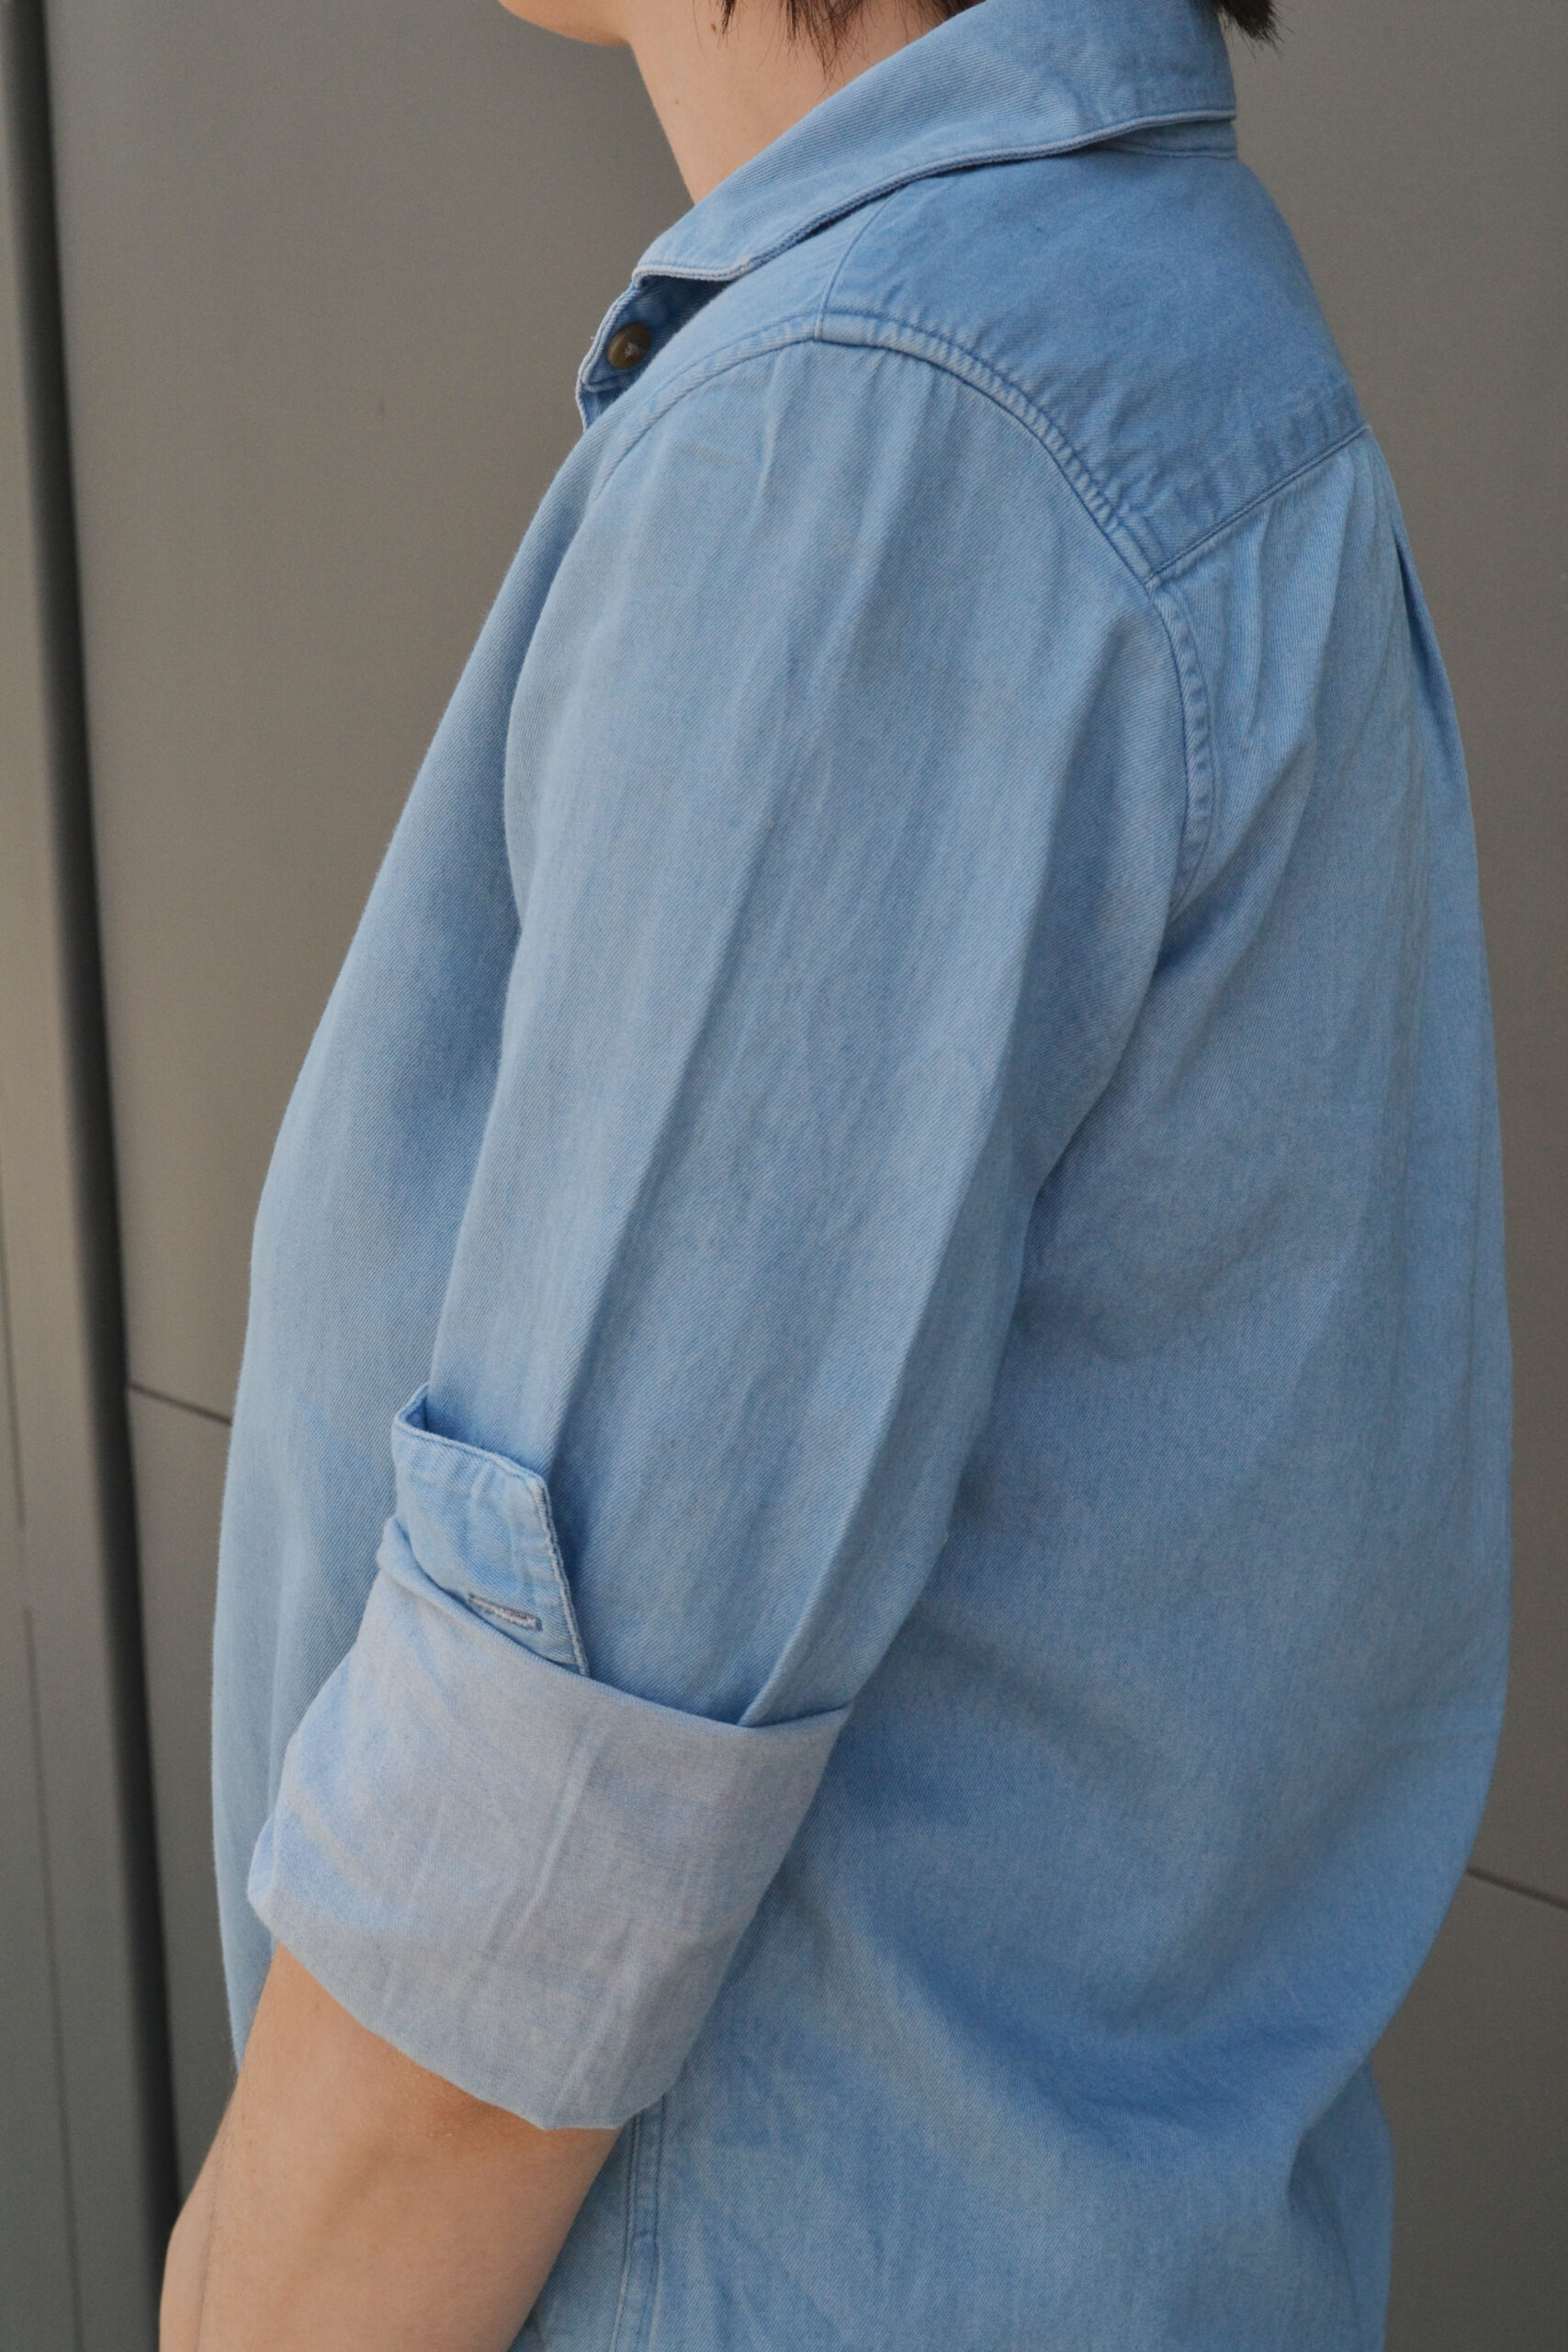 denim on denim, denim shirt, daniela soriano, outfit details, uniqlo, uniqlo denim shirt,